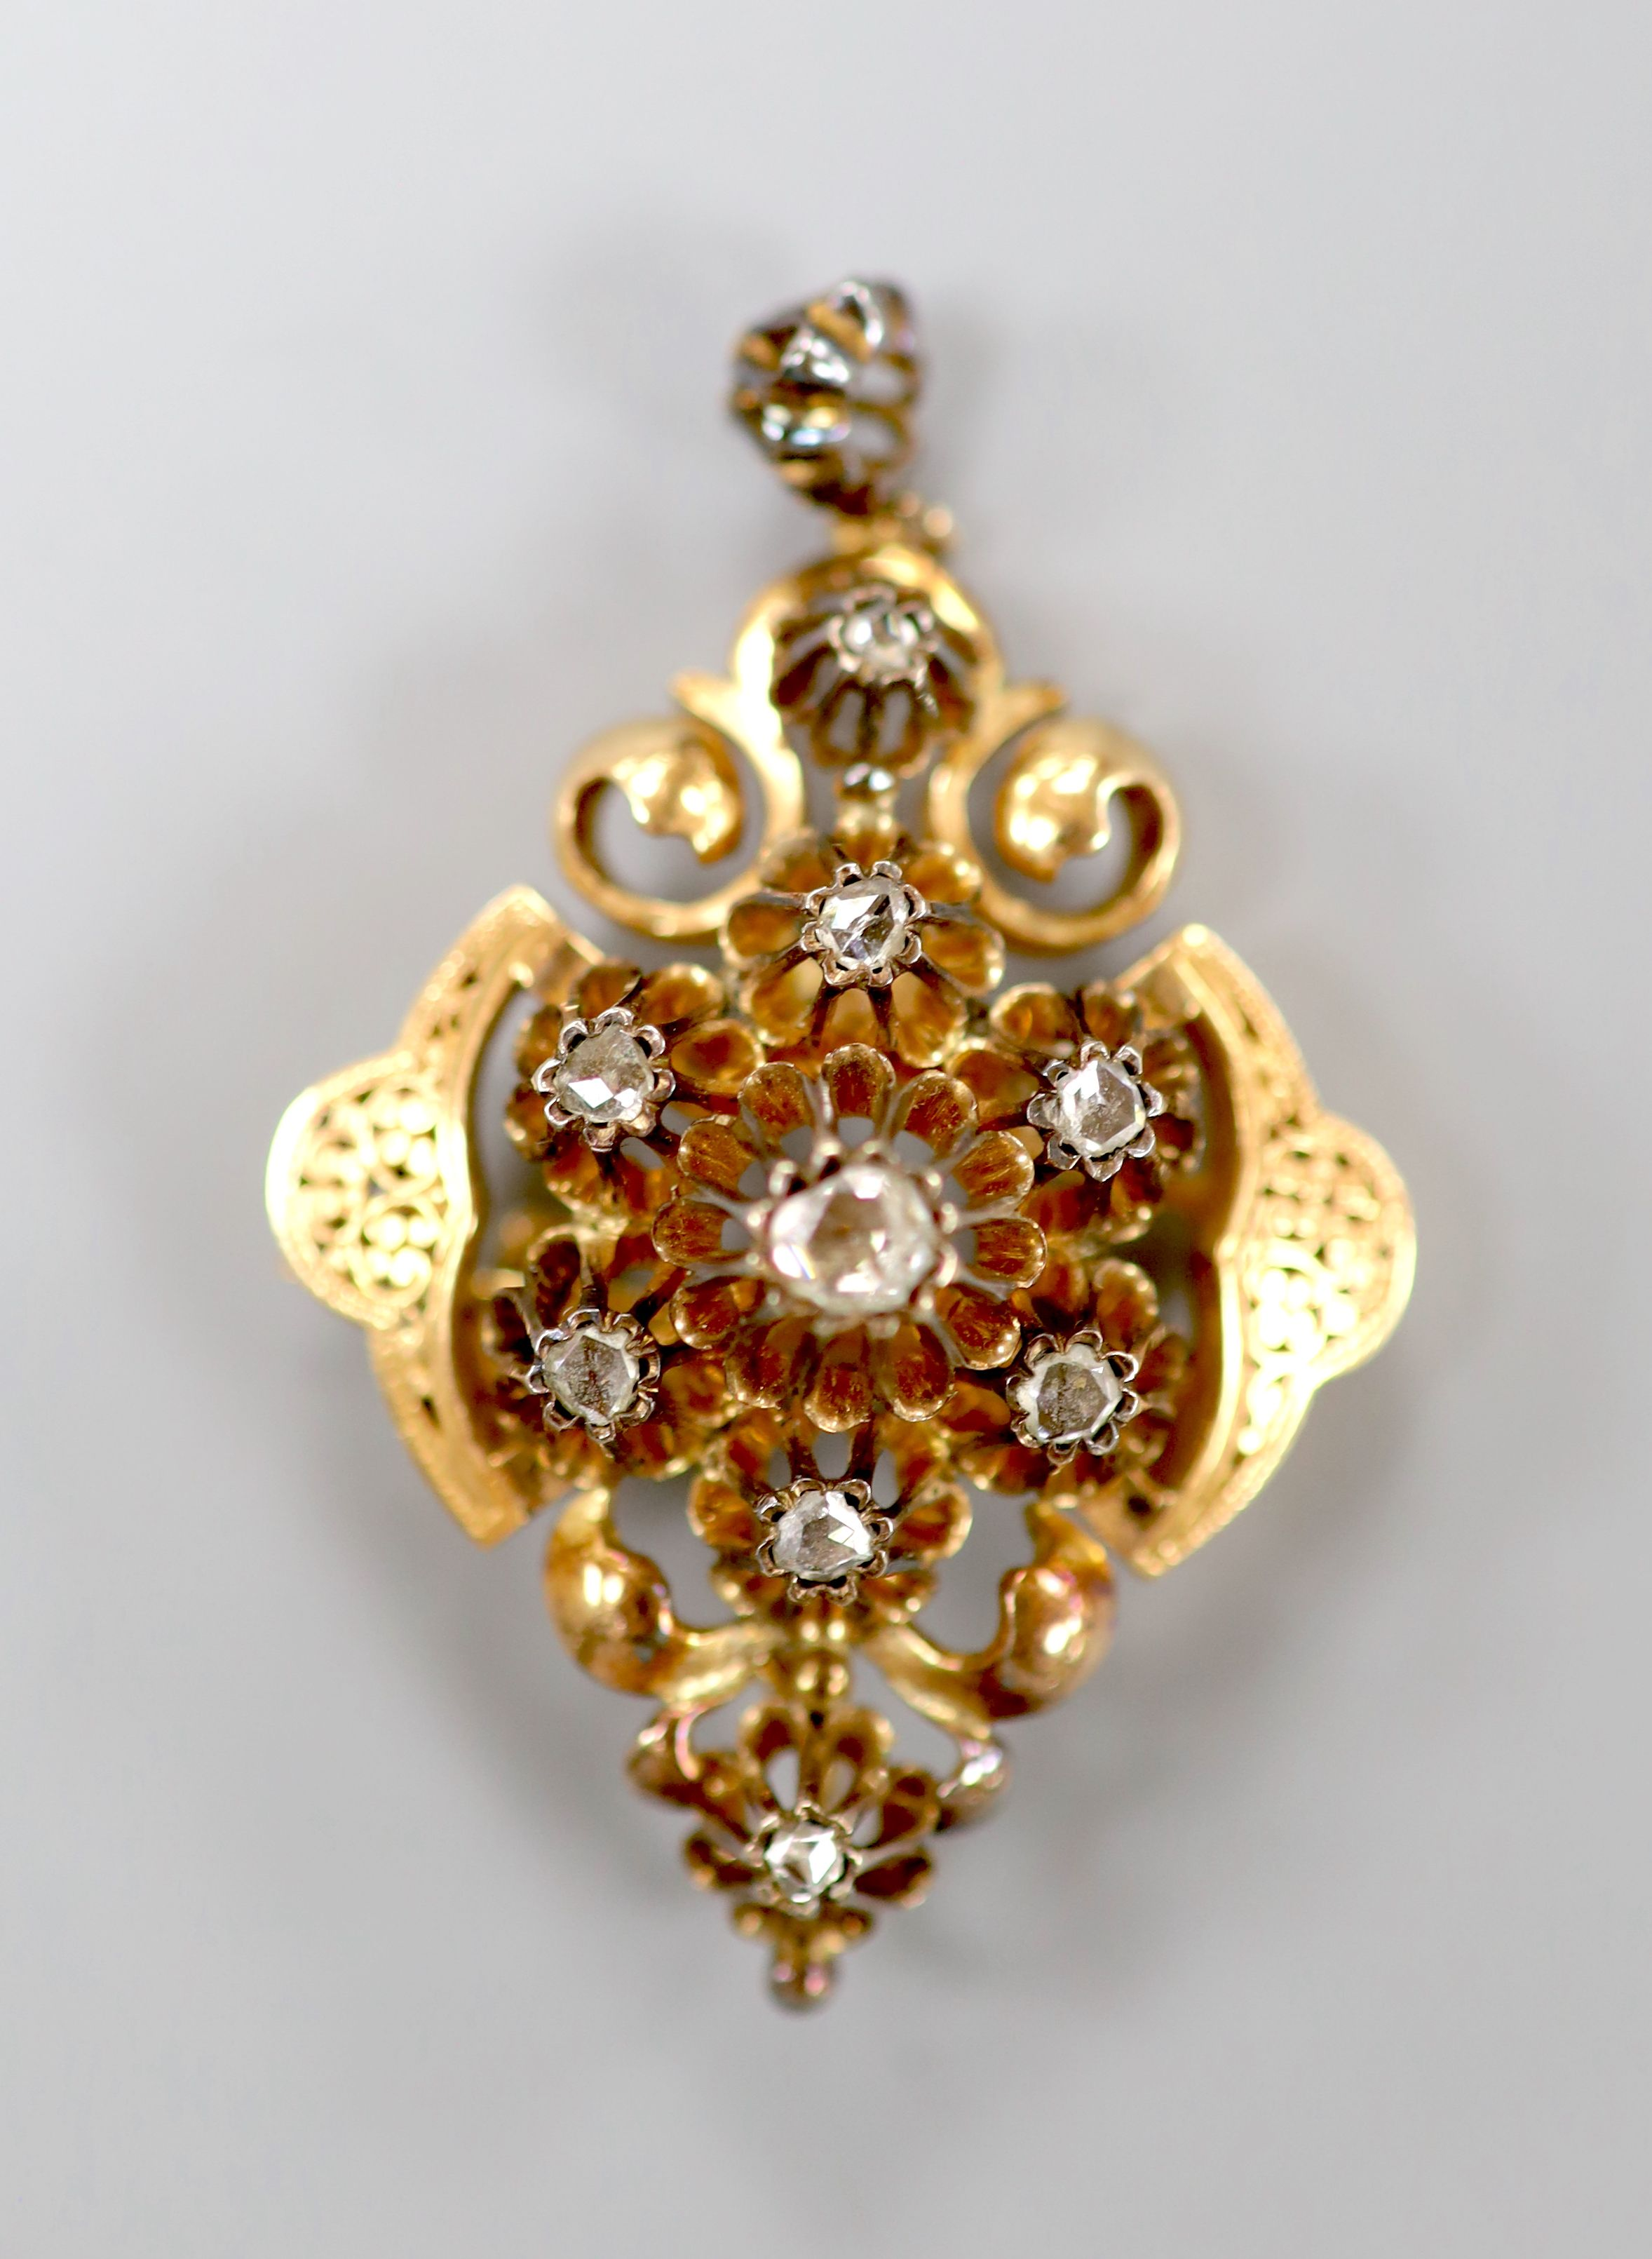 A late 19th/early 20th century Austro-Hungarian yellow metal and rose cut diamond set drop pendant